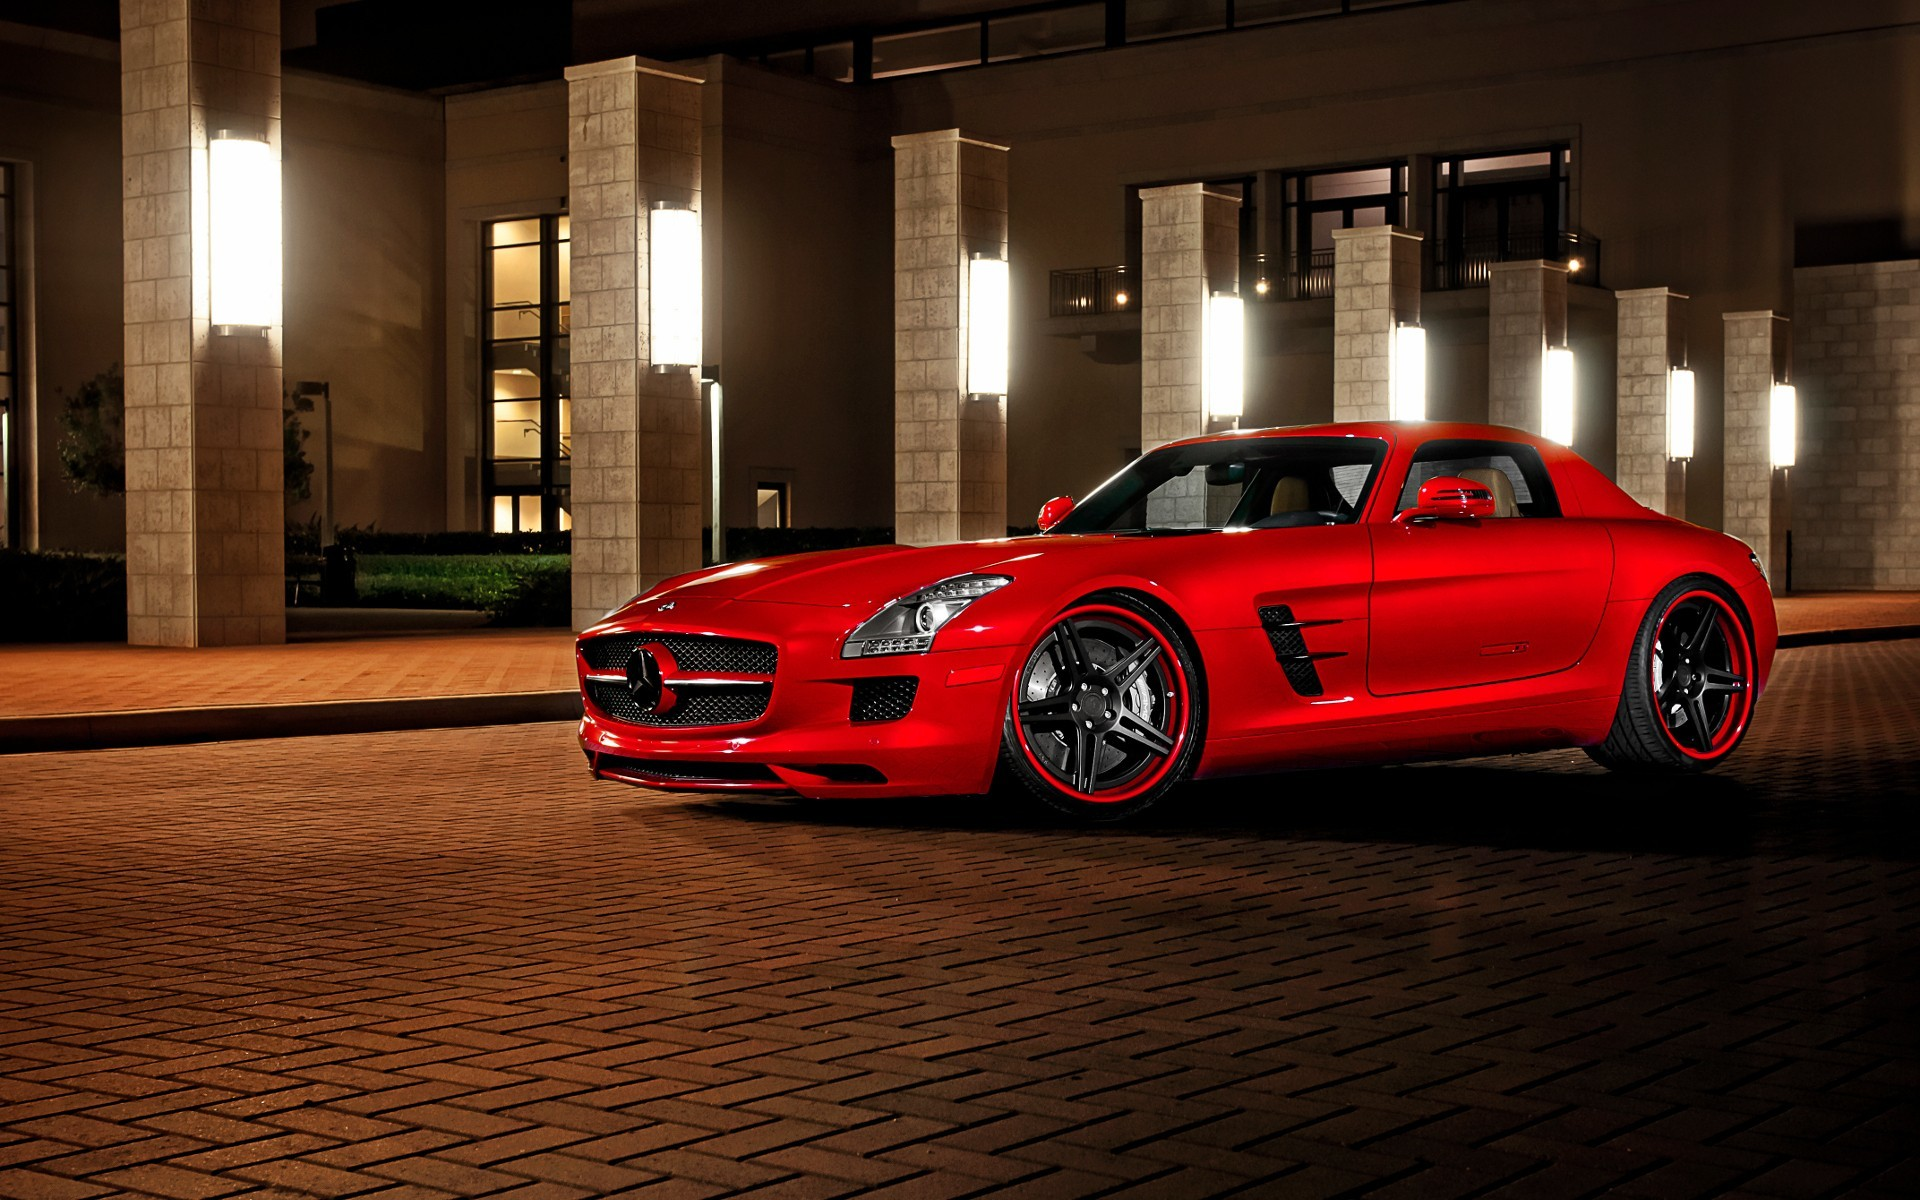 cars Mercedes-Benz Mercedes-Benz SLS AMG E-Cell HD Wallpaper